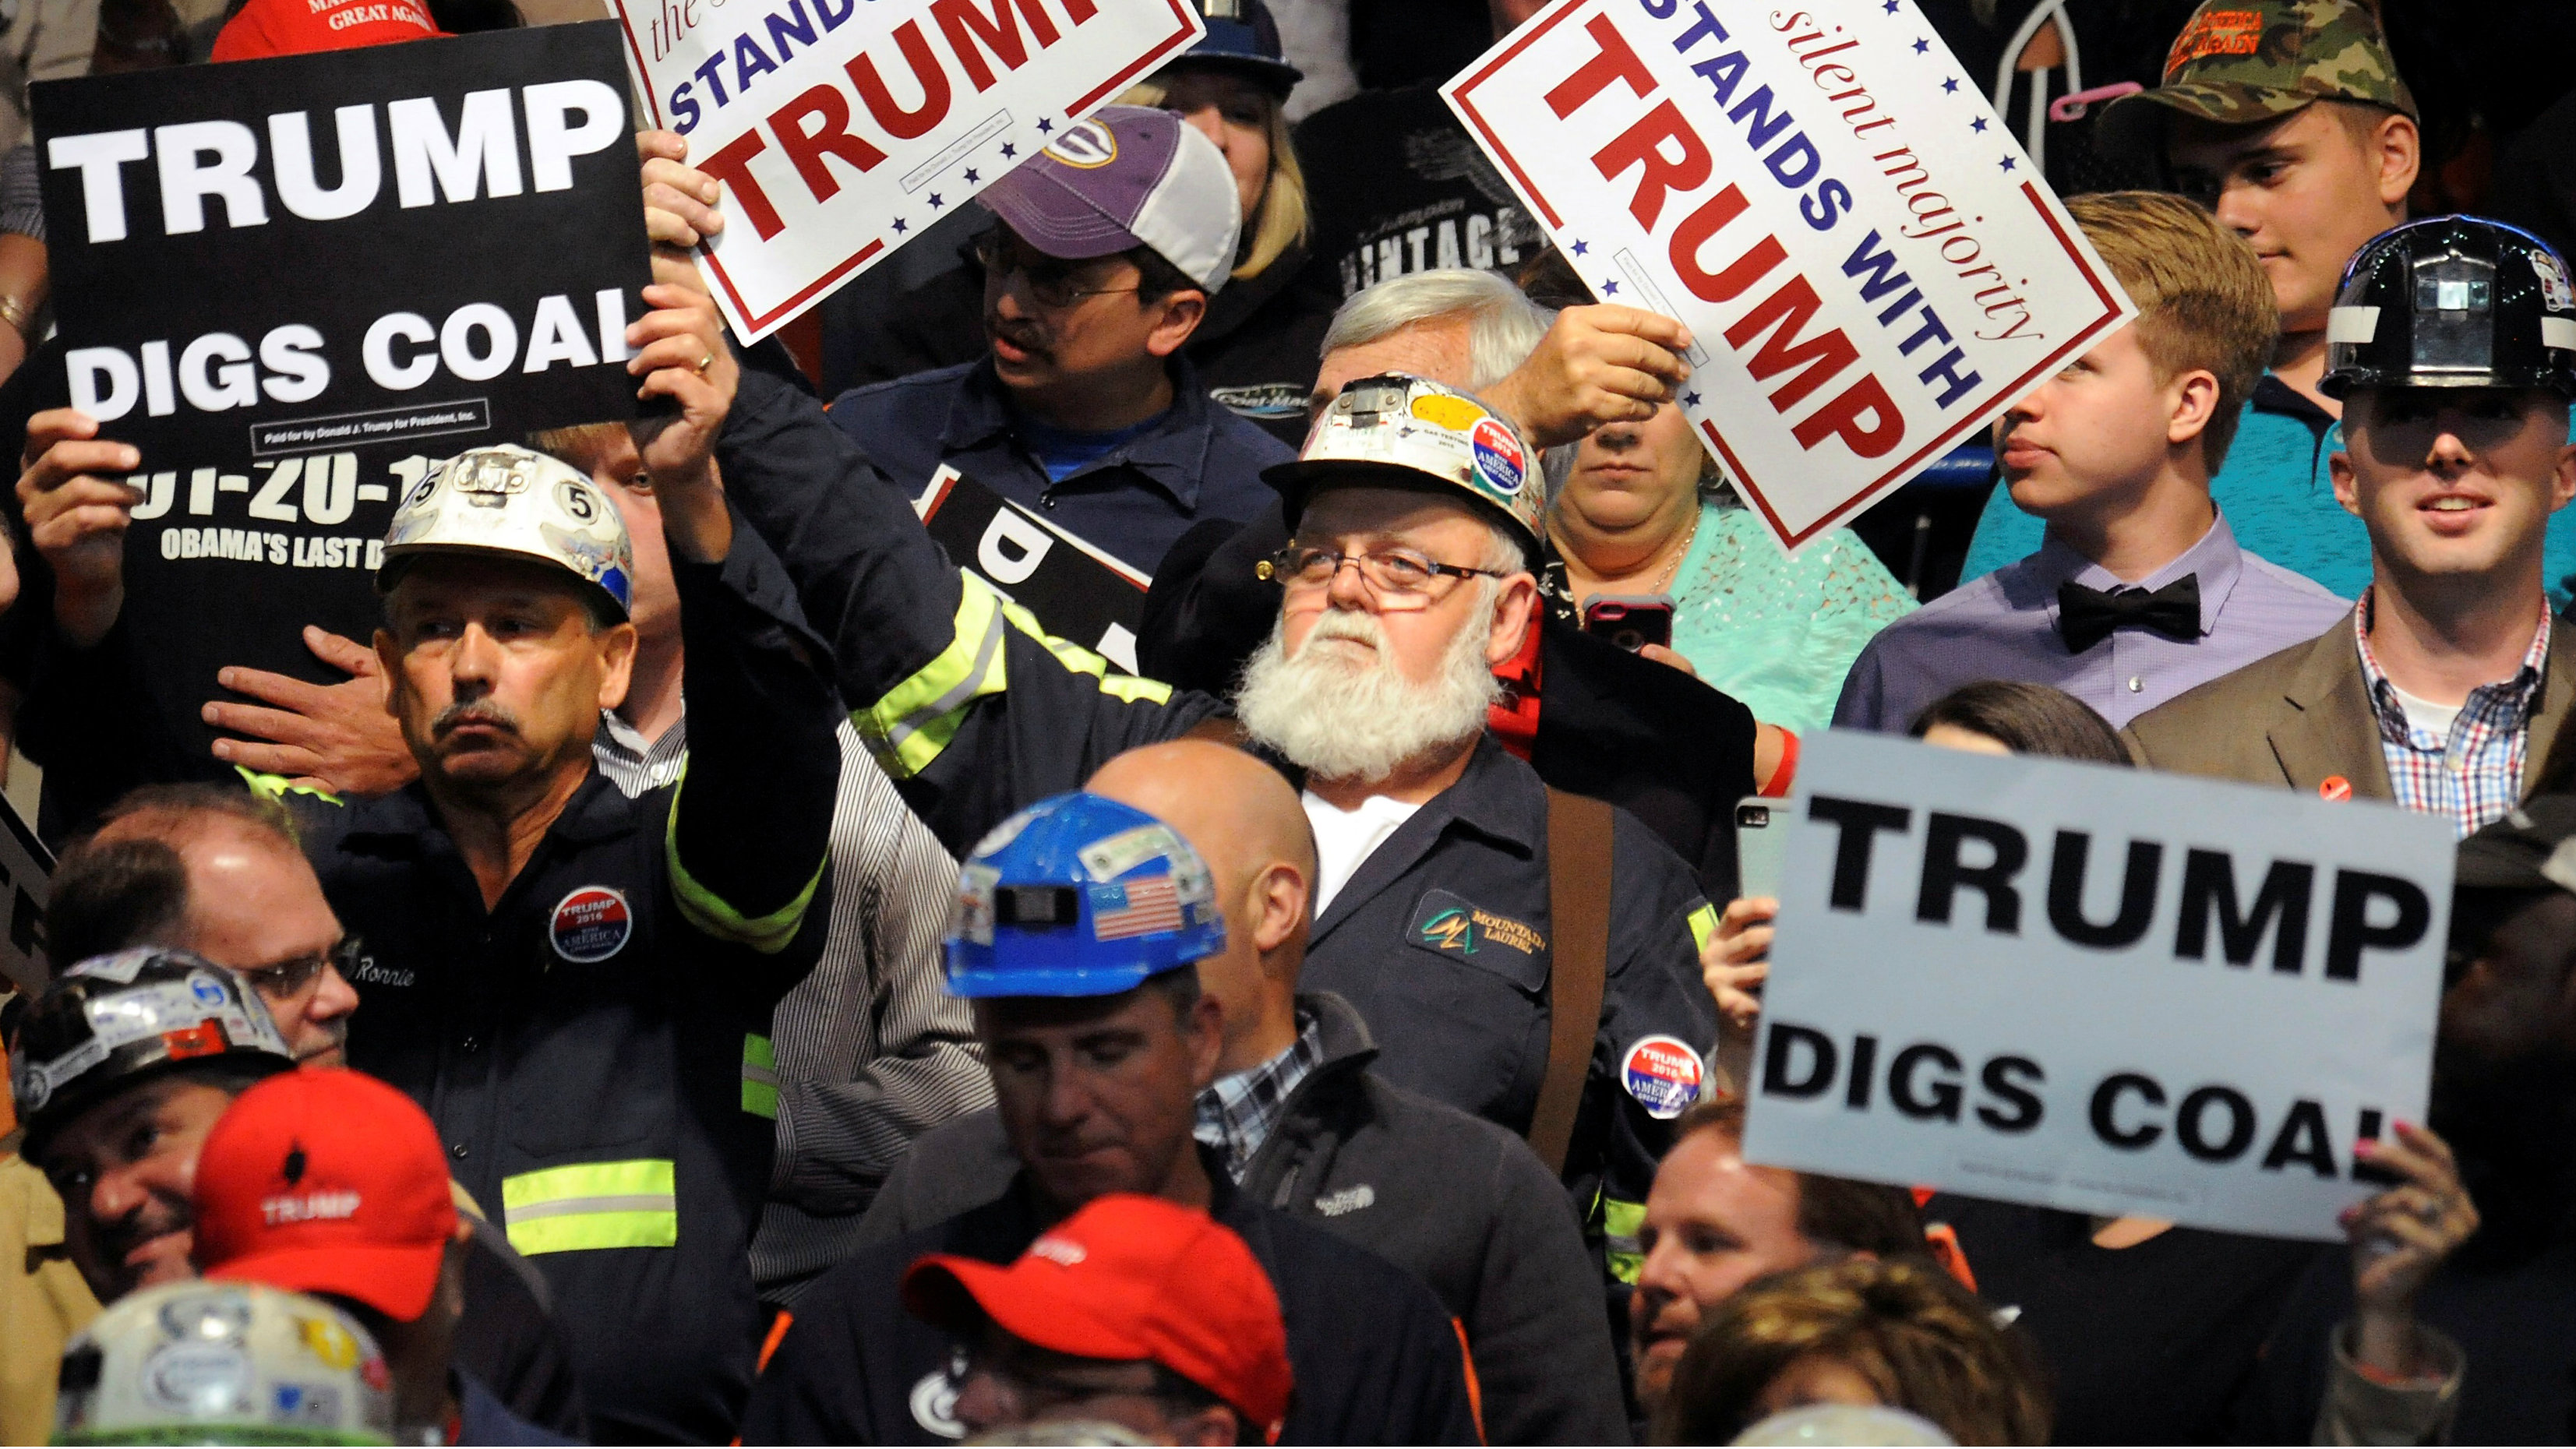 People show their support as Donald Trump speaks in Charleston, West Virginia, U.S. May 5, 2016. REUTERS/Chris Tilley/File Photo